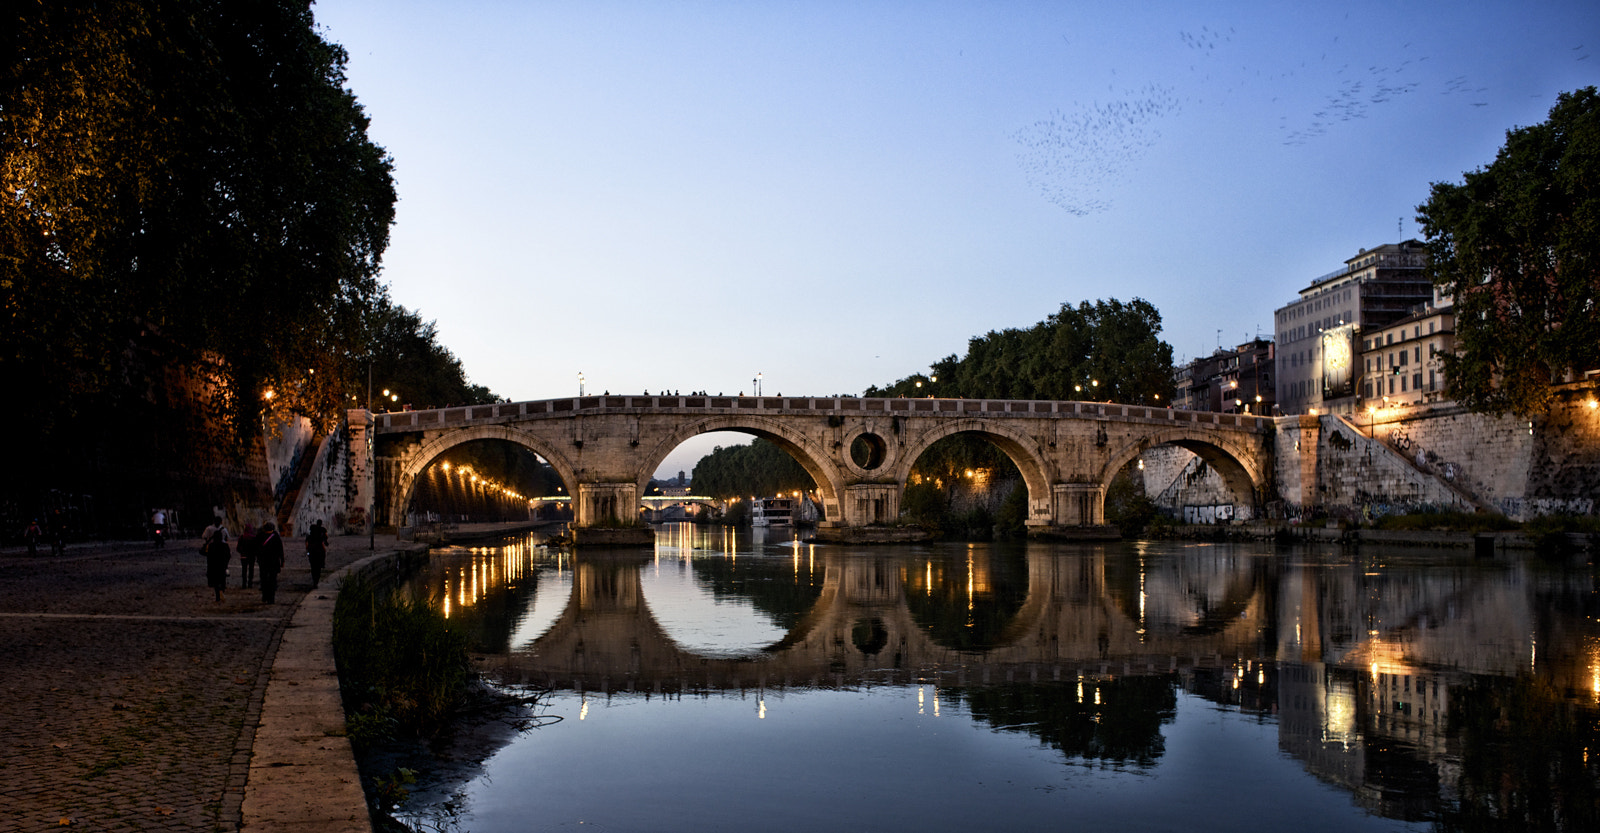 Photograph Ponte Sisto by Paolo Costantino on 500px